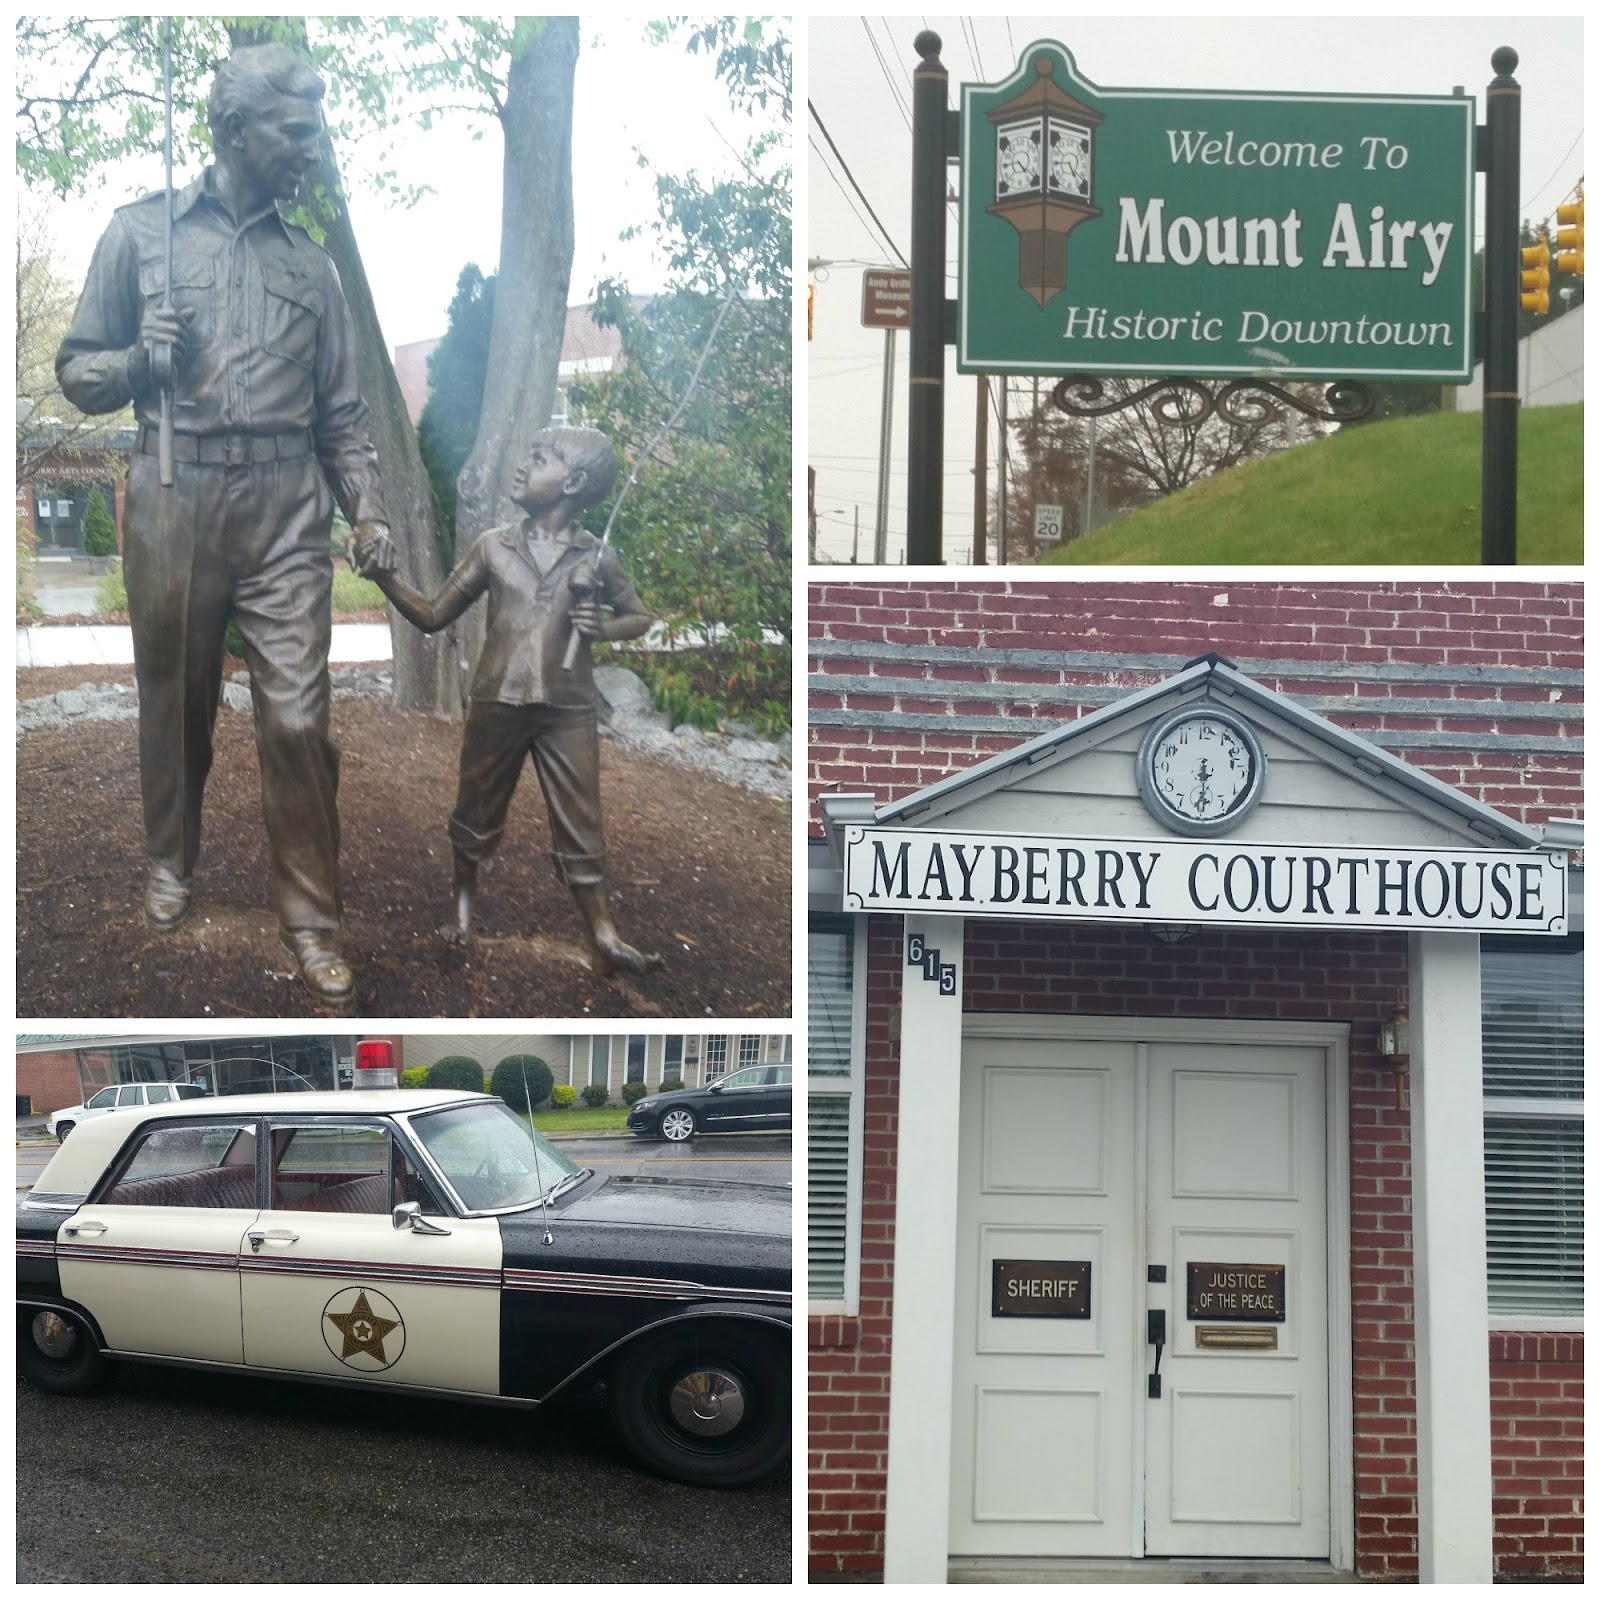 Mayberry in Mount Airy North Carolina